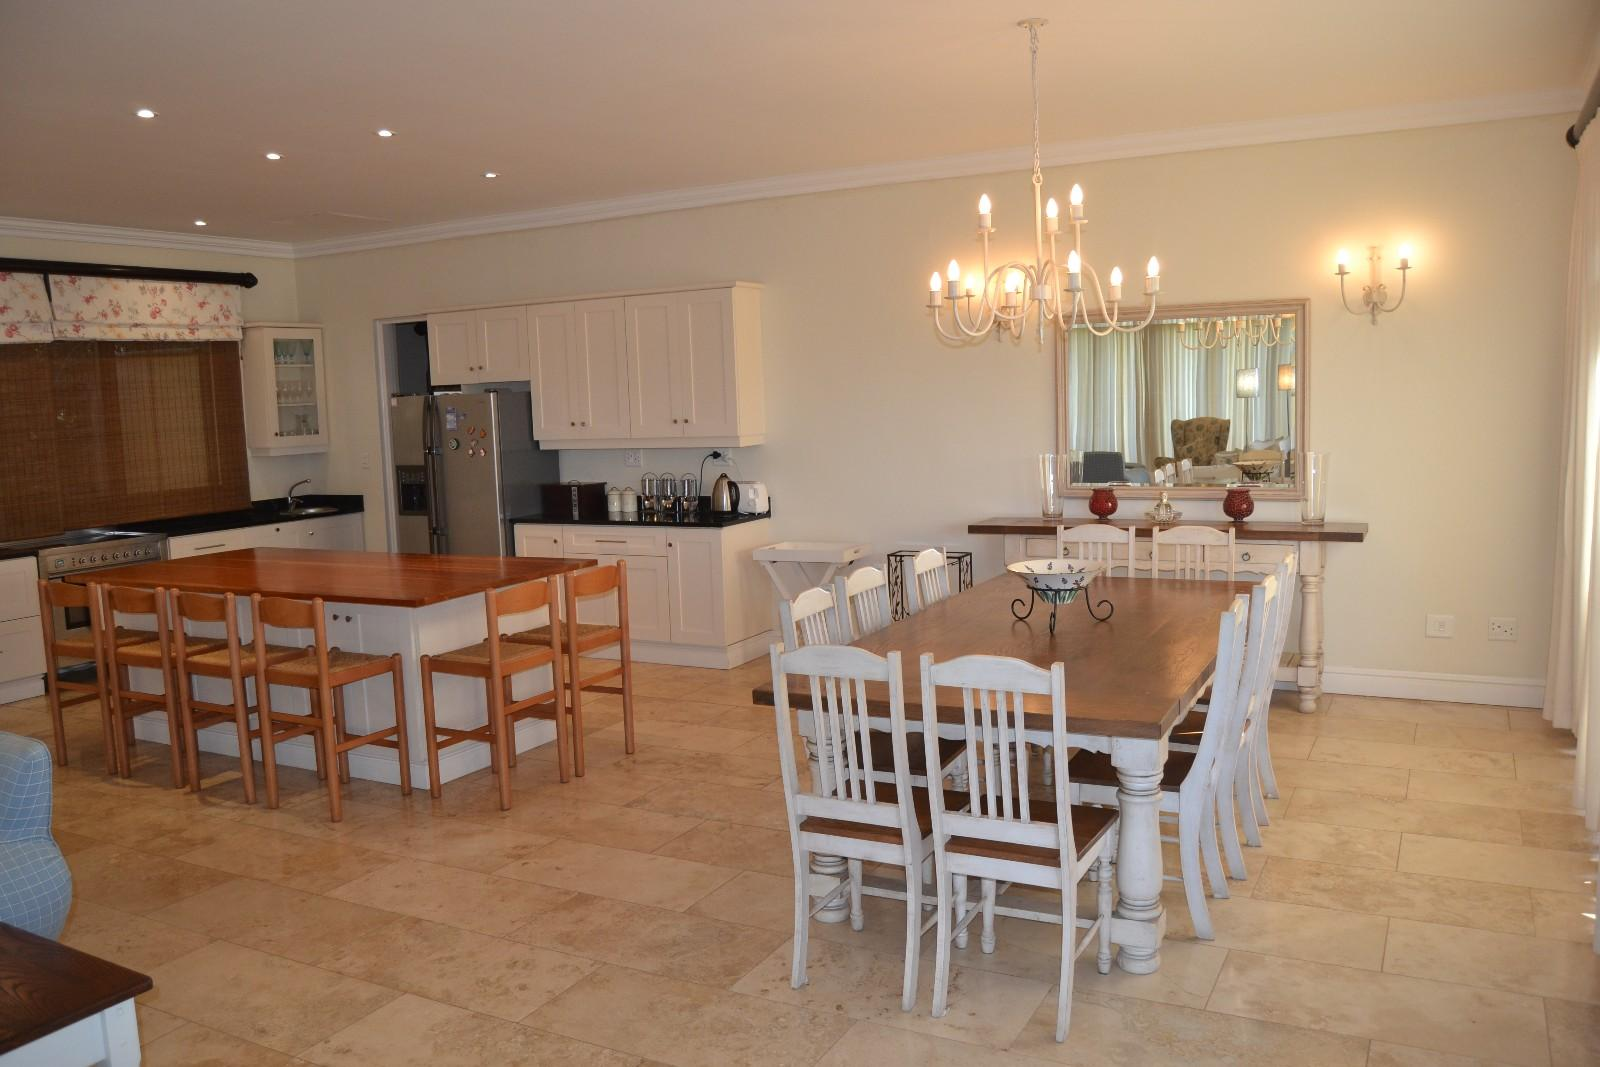 Zimbali Coastal Resort And Estate property for sale. Ref No: 13361290. Picture no 6